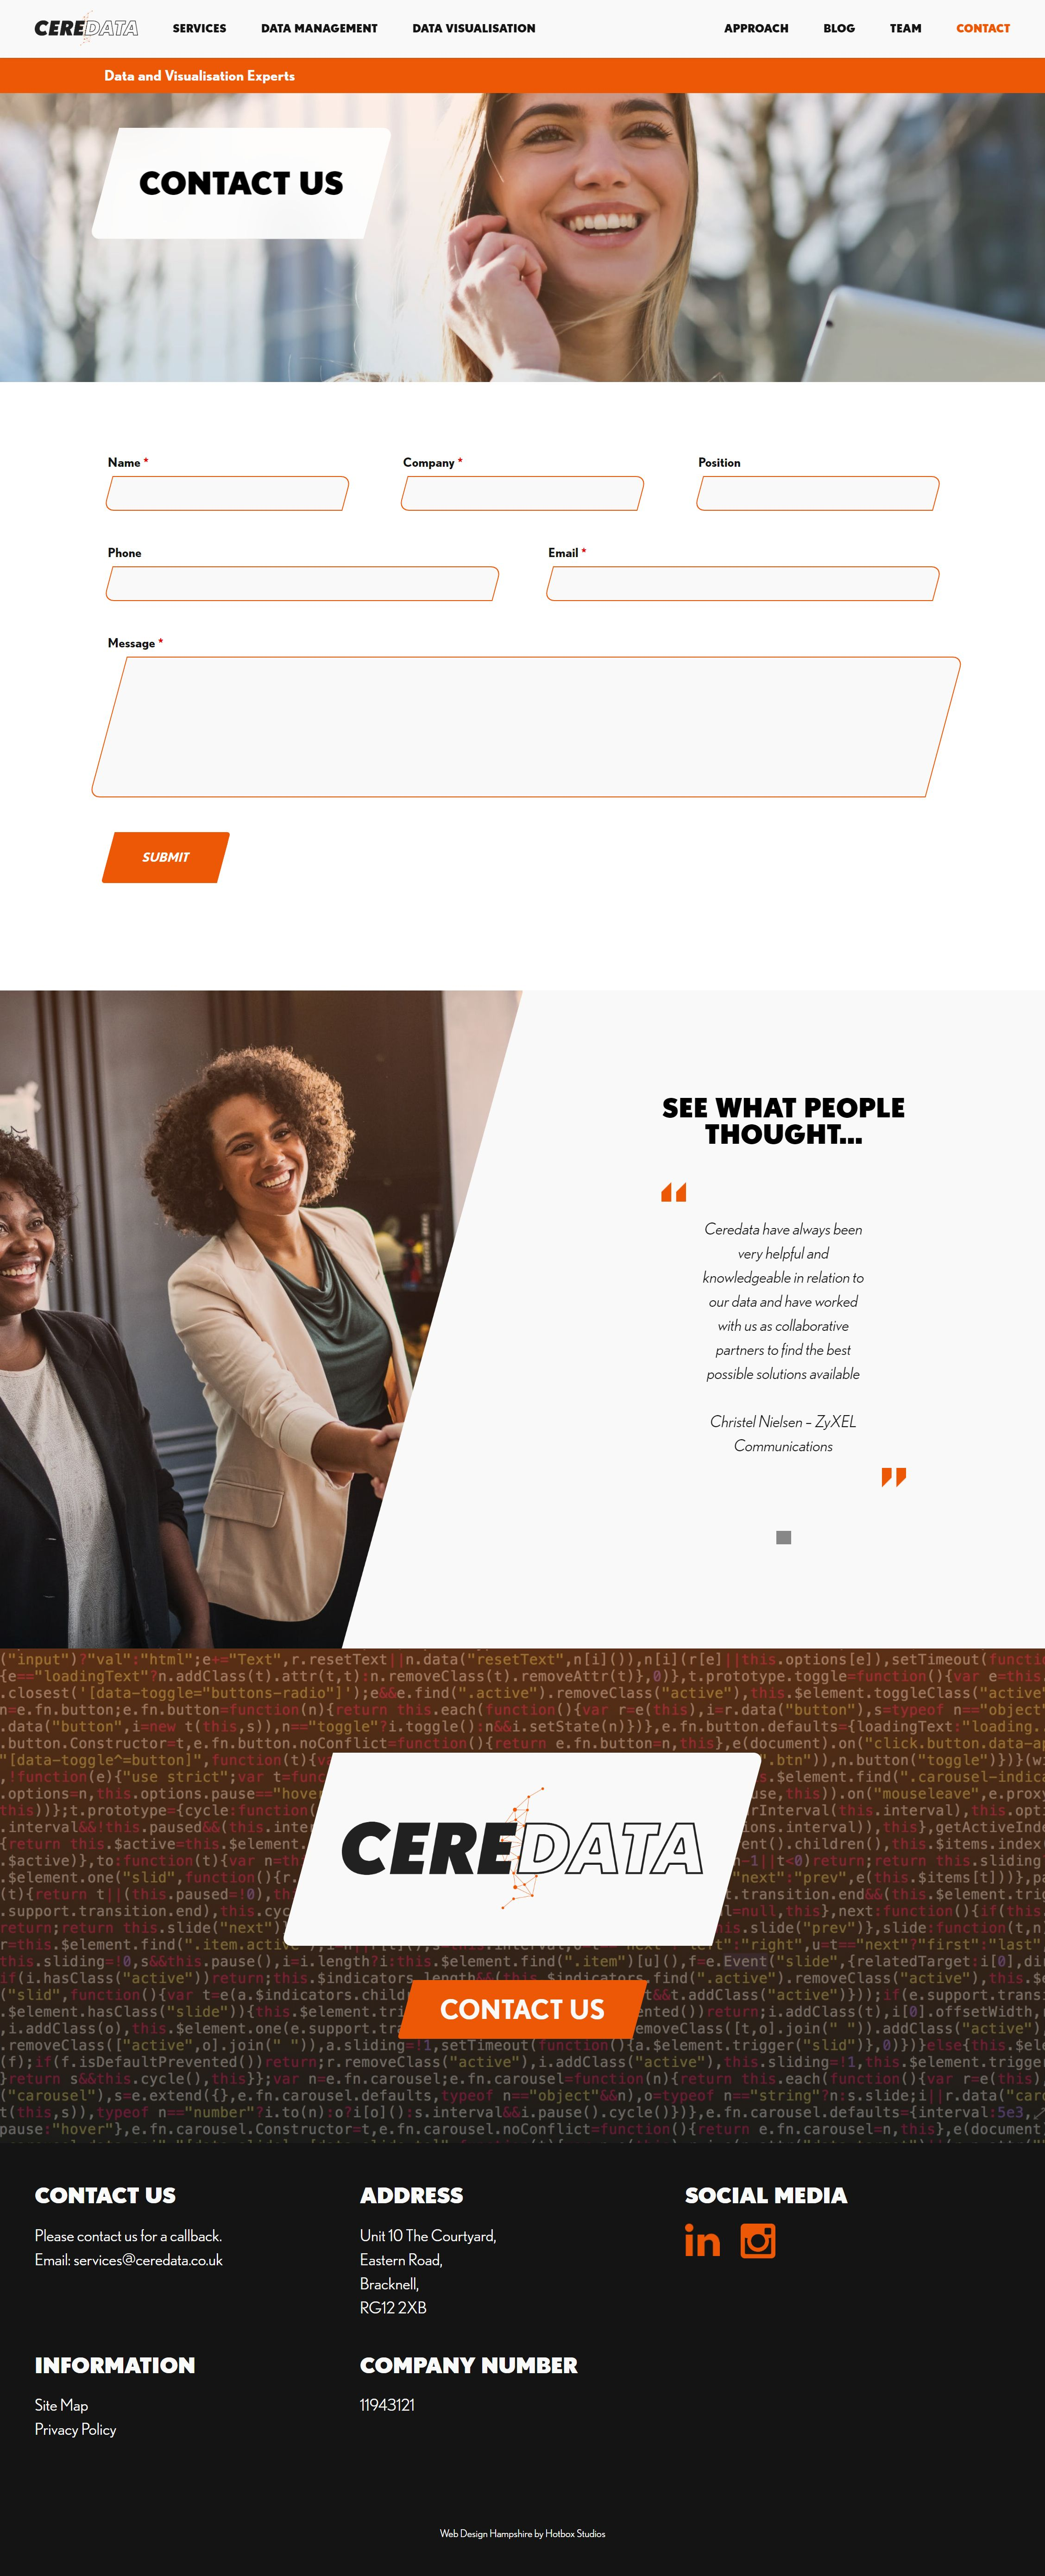 Ceredata Wordpress Web Design SP008 Contact